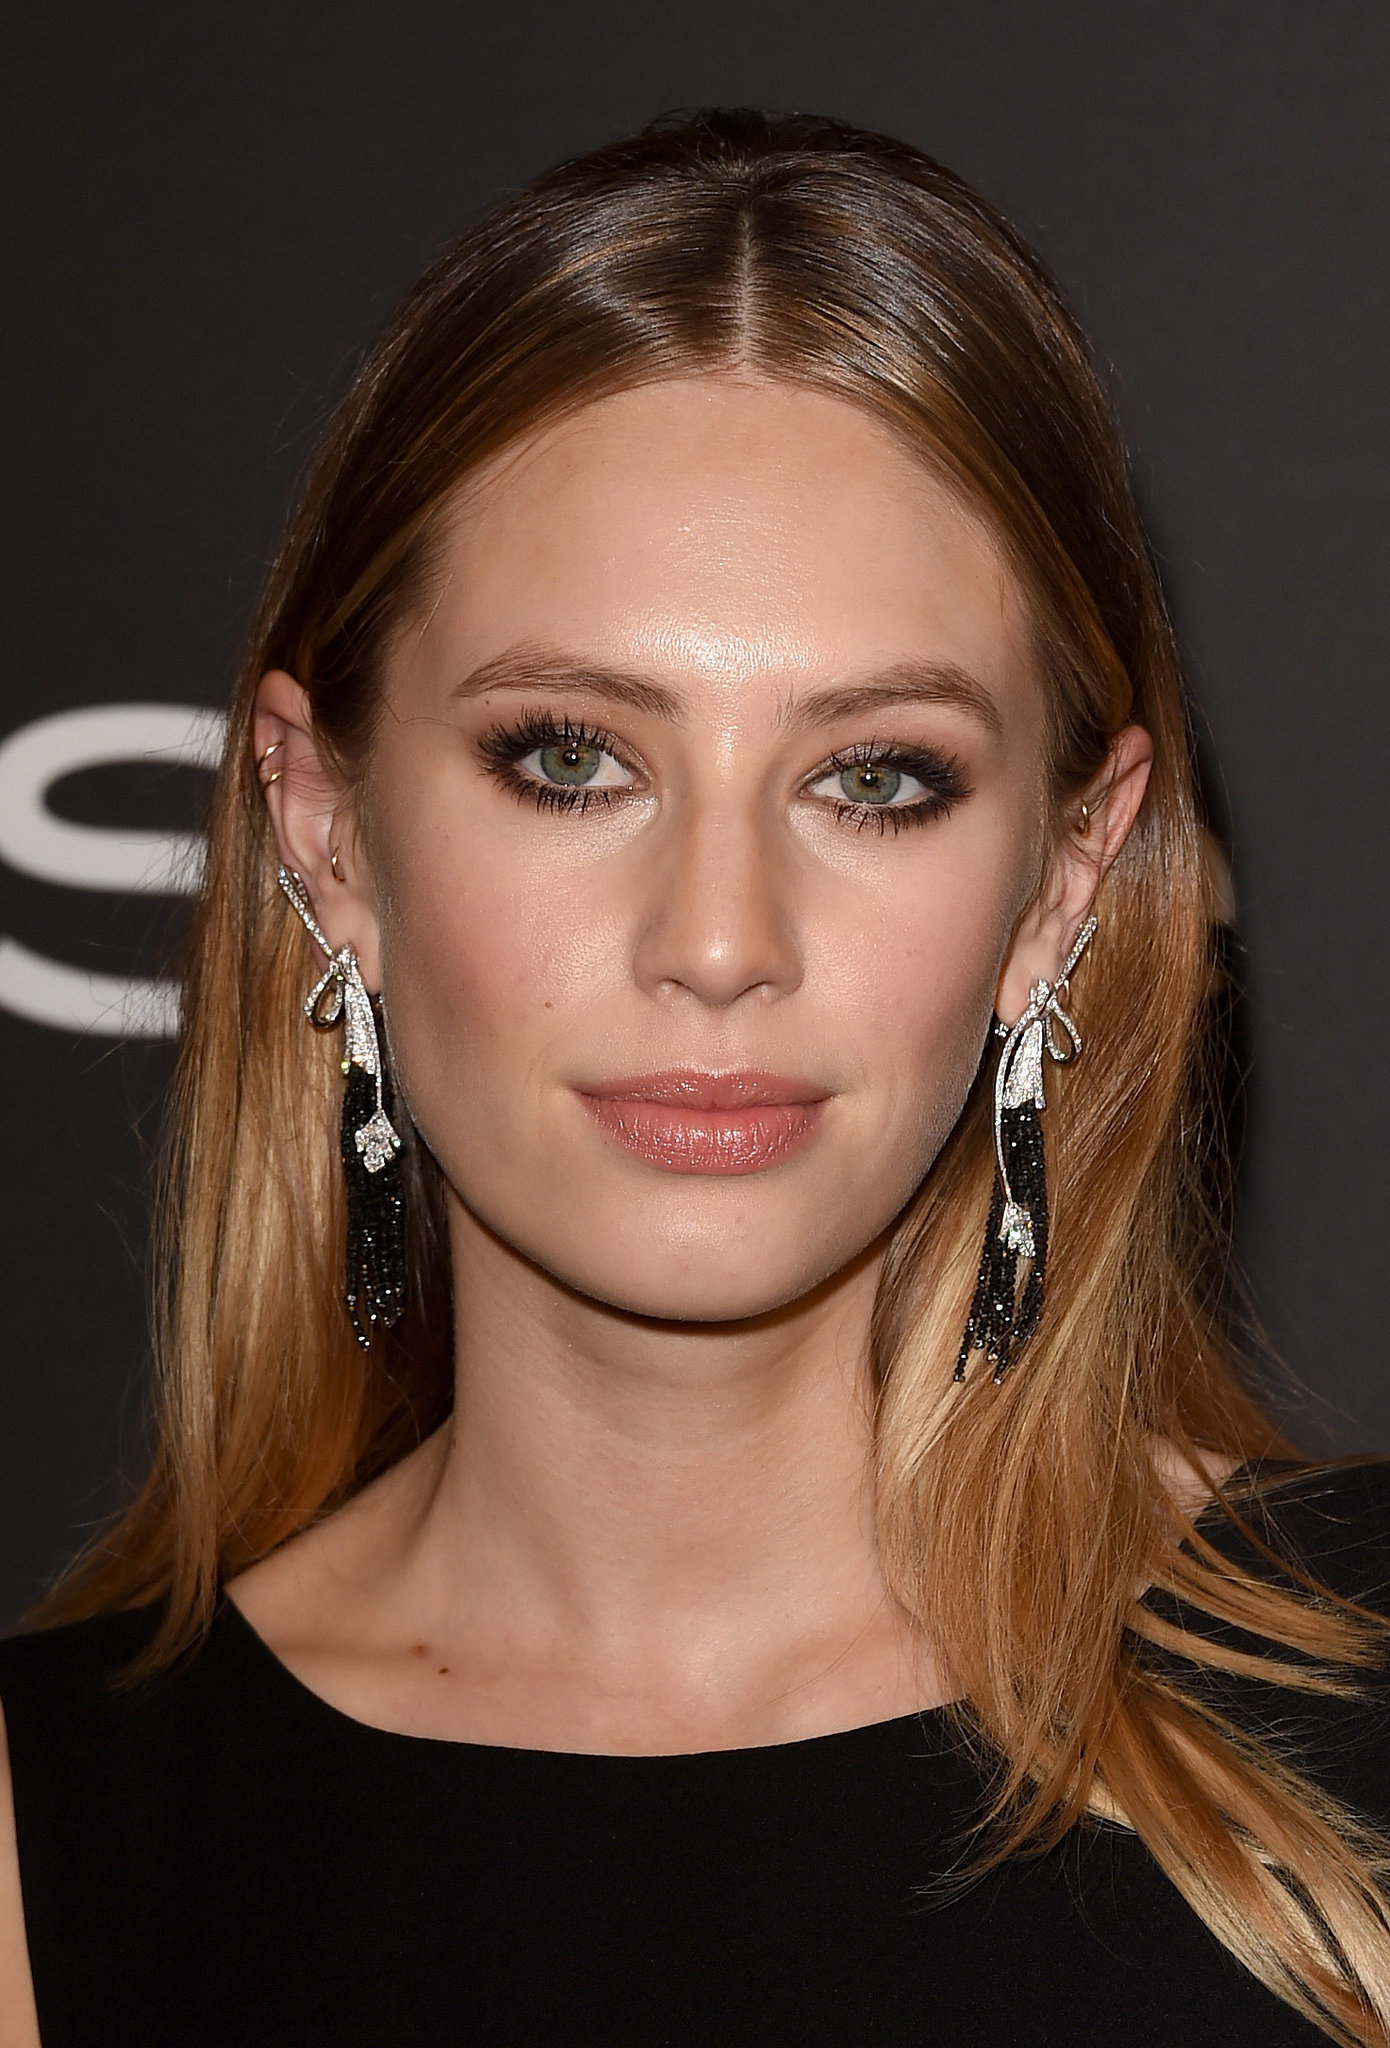 Dylan Penn Beauty Watch List 2015 Rising Stars You Need